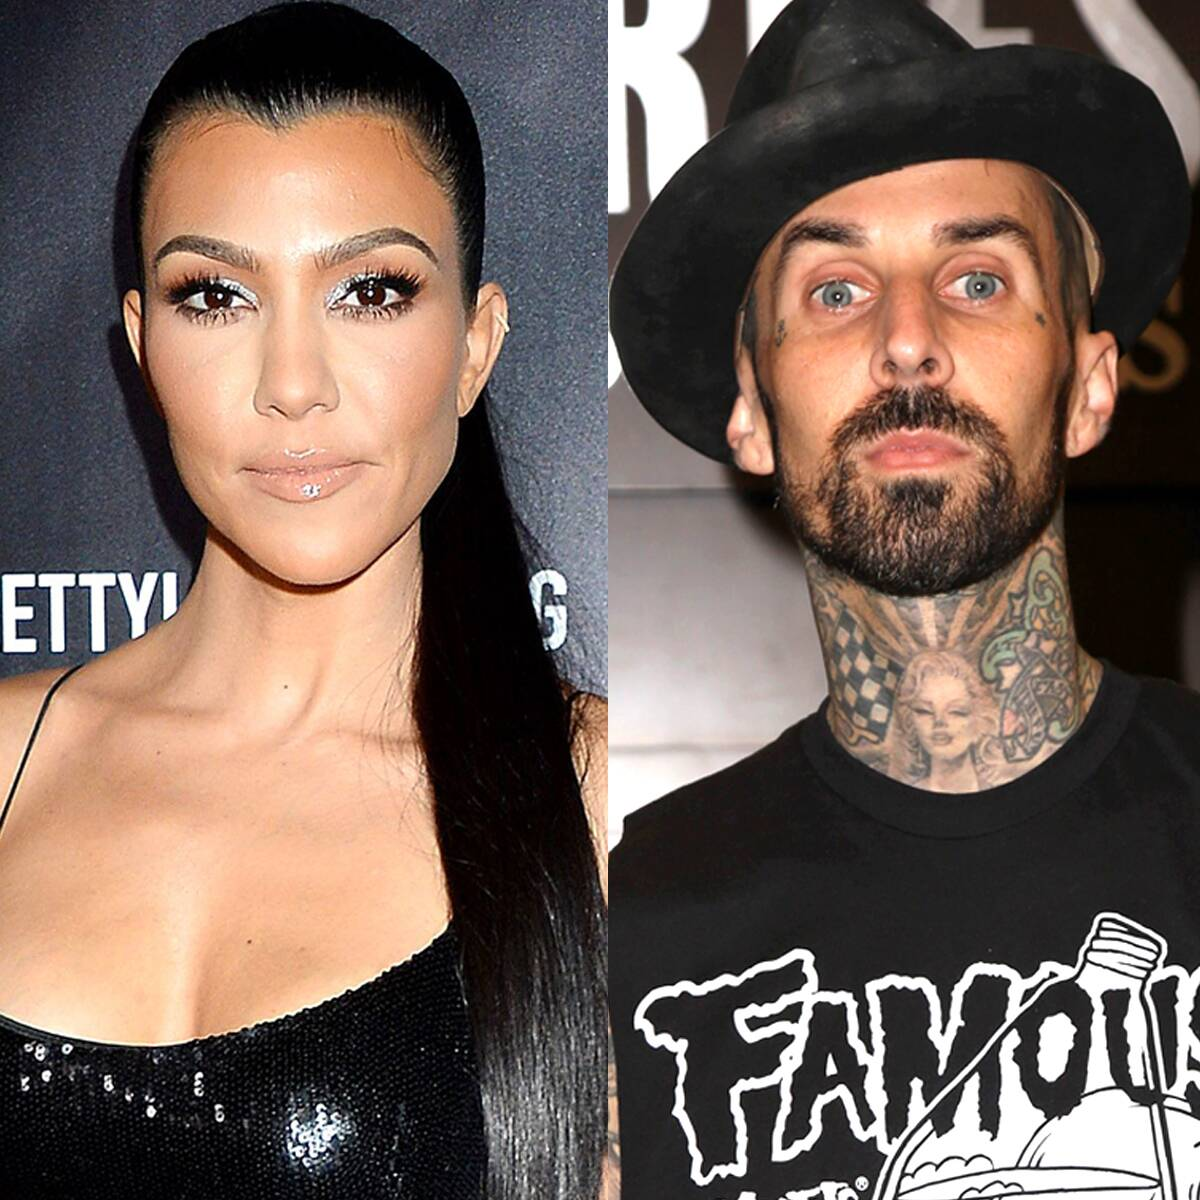 Kourtney Kardashian Makes Her Relationship With Travis Barker Instagram Official